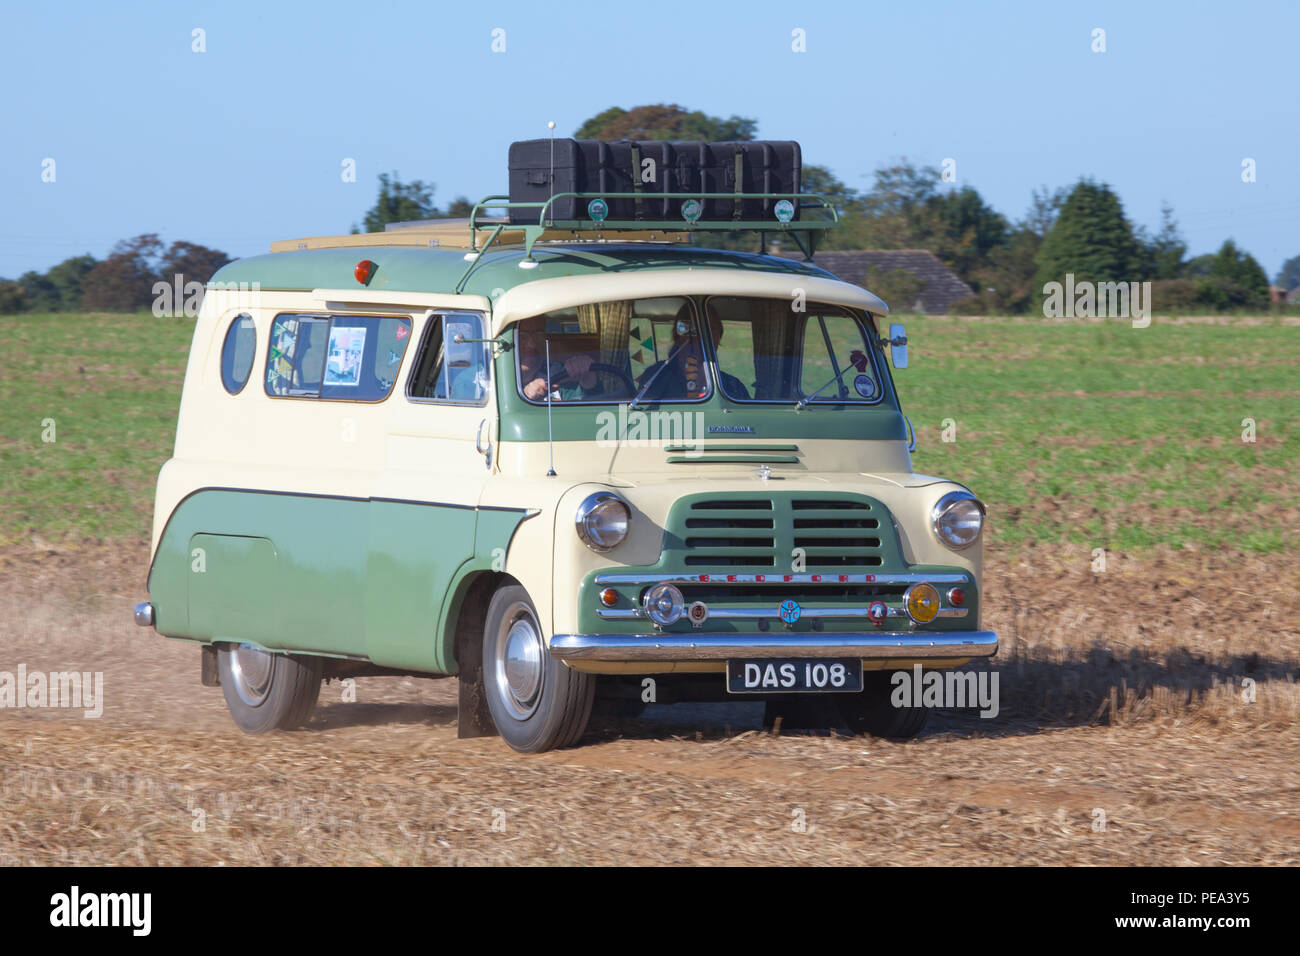 Bedford Dormobile Motorhome arriving at a Classic Car Show & Ploughing Match in Ainderby, North Yorkshire Stock Photo